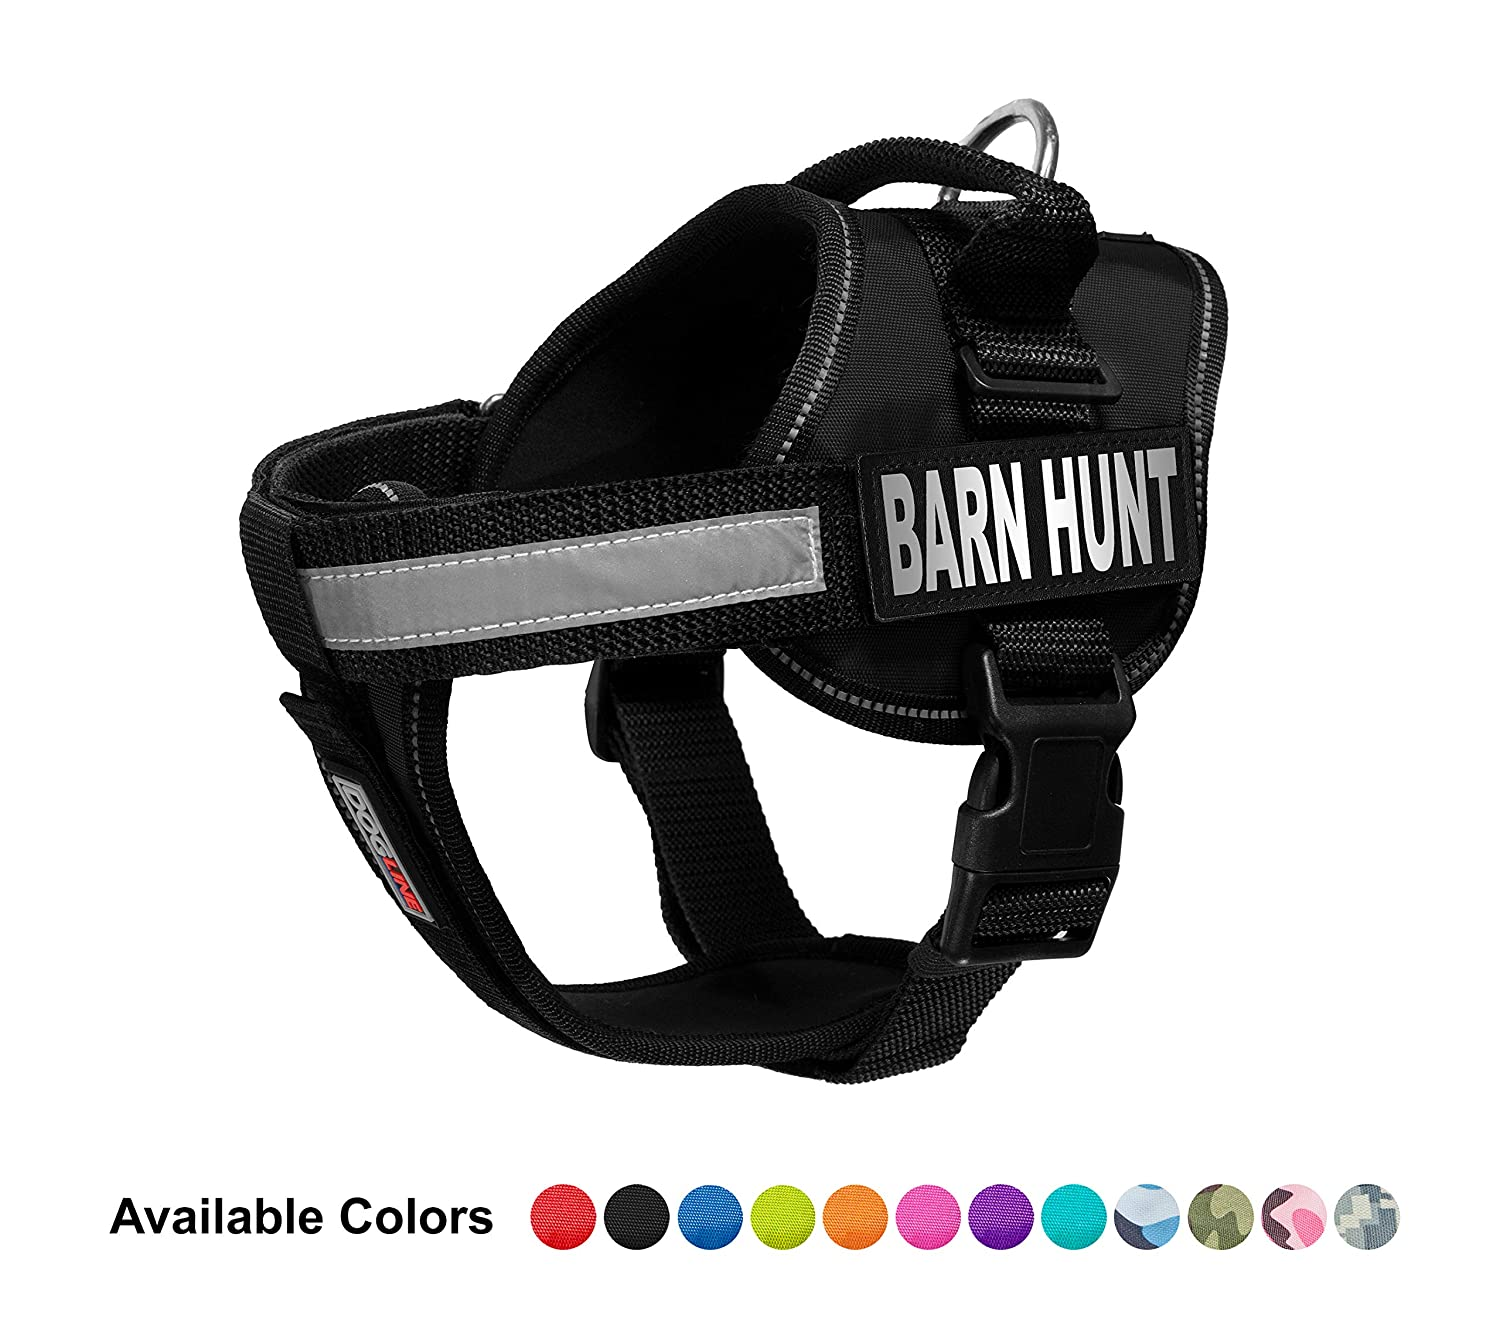 Dogline Vest Harness for Dogs and 2 Removable Barn Hunt Patches, X-Large 36 to 46 , Black